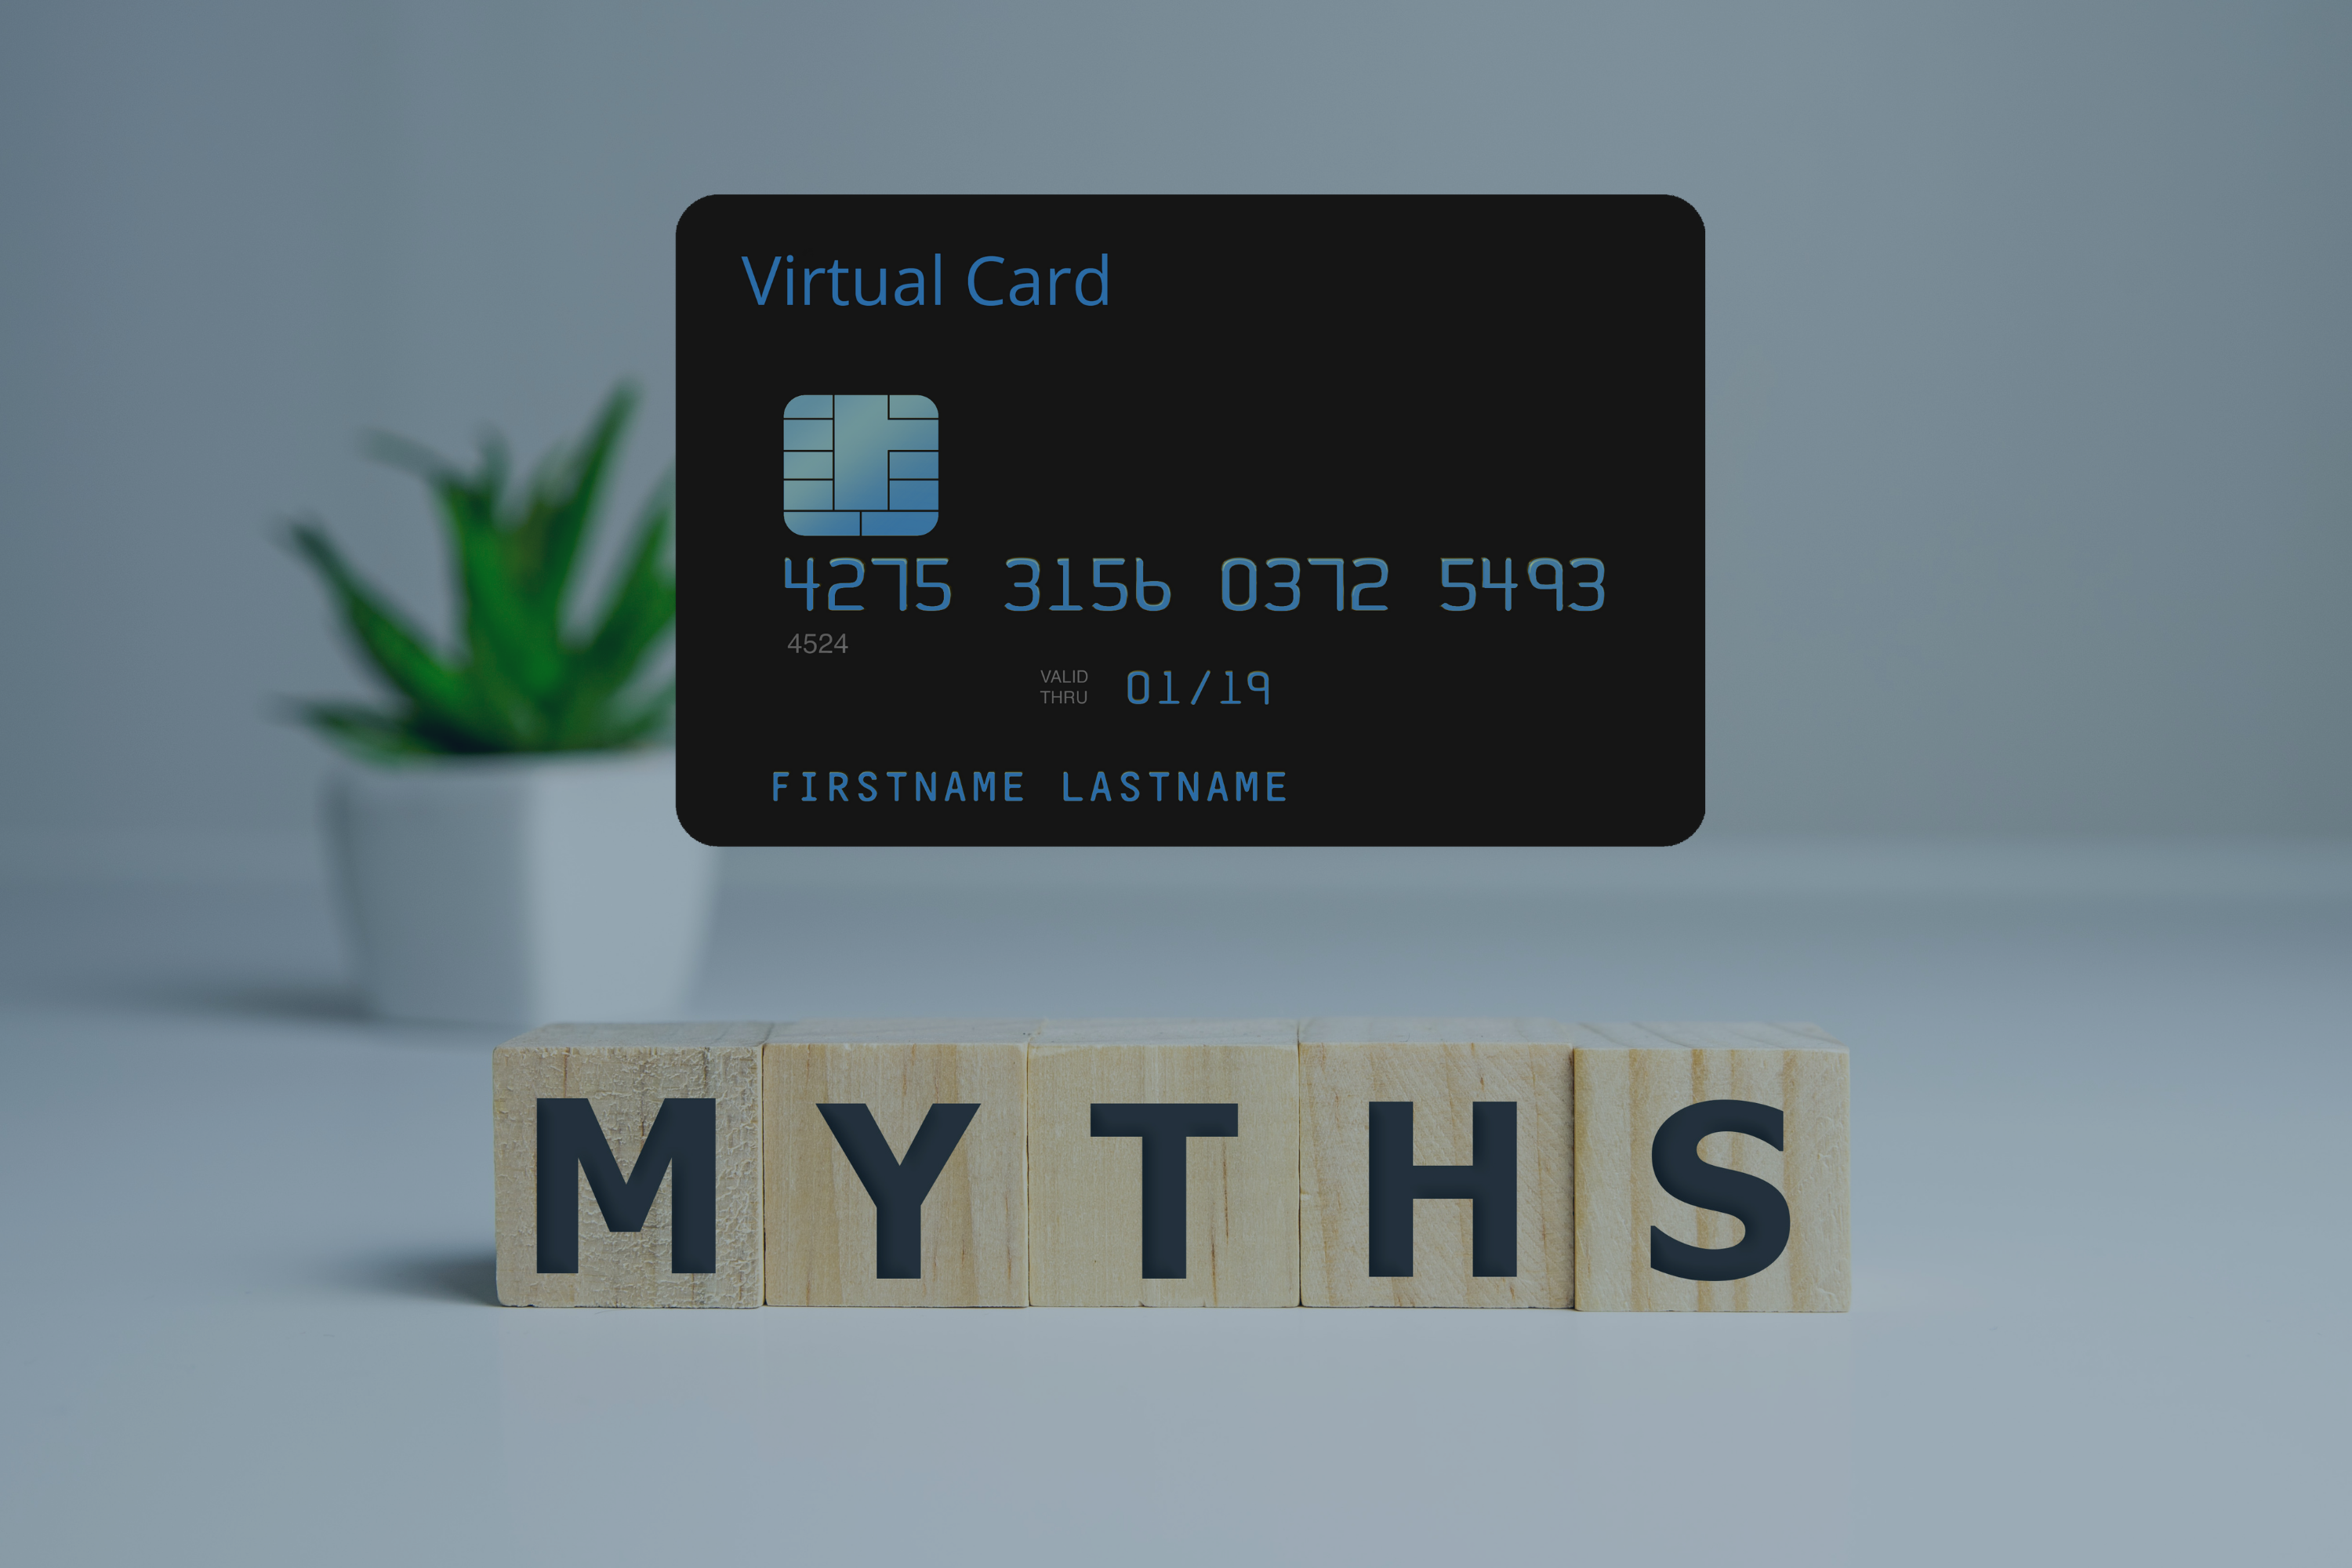 virtual_card_hovering_over_myth_word_on_wooden_cubes